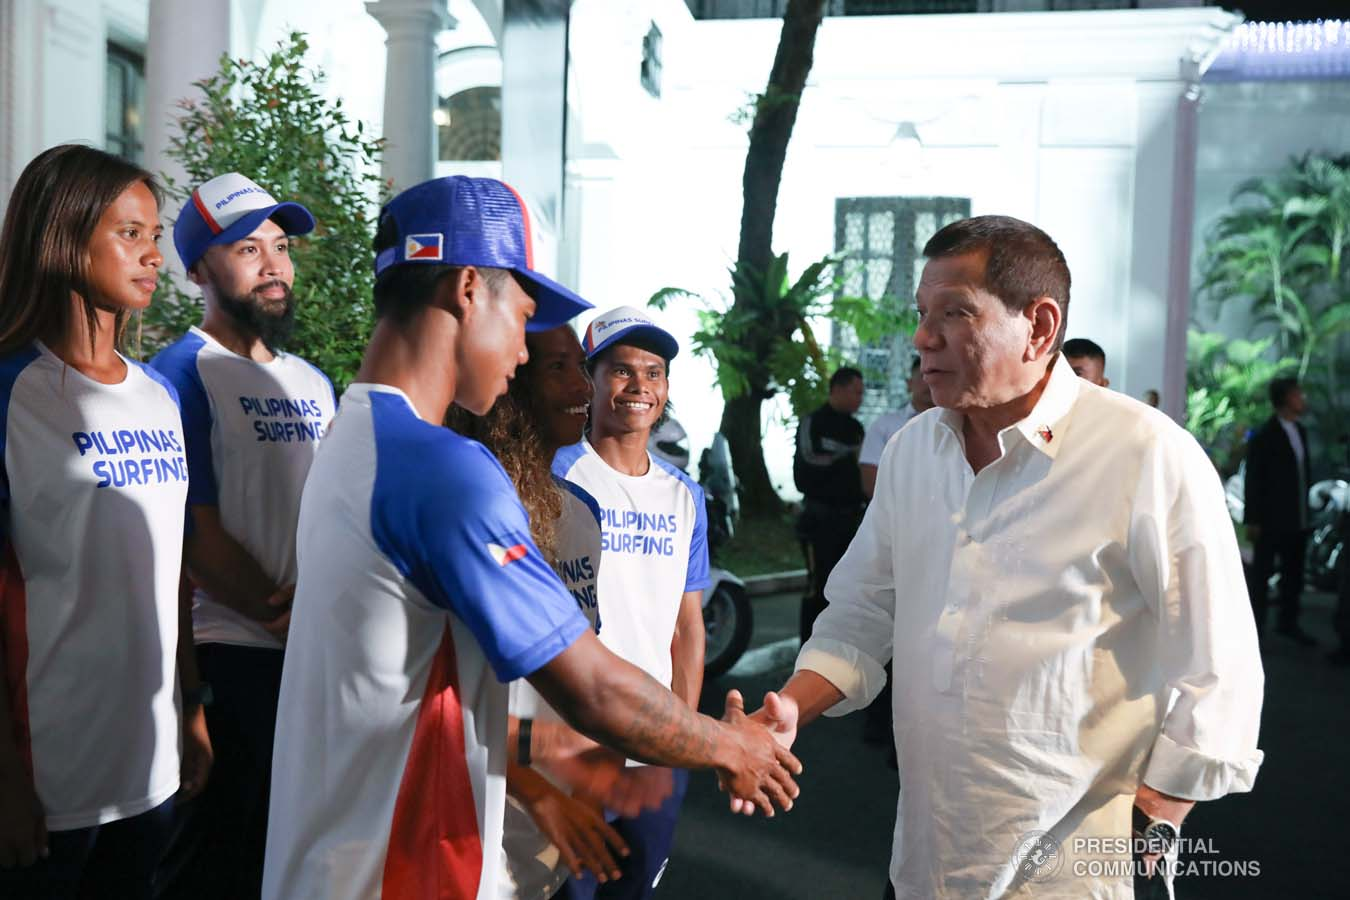 President Rodrigo Roa Duterte greets Southeast Asian Games gold medalist Roger Casugay during the meeting with the Philippine Surfing Team at the Malacañan Palace on December 10, 2019. RICHARD MADELO/PRESIDENTIAL PHOTO